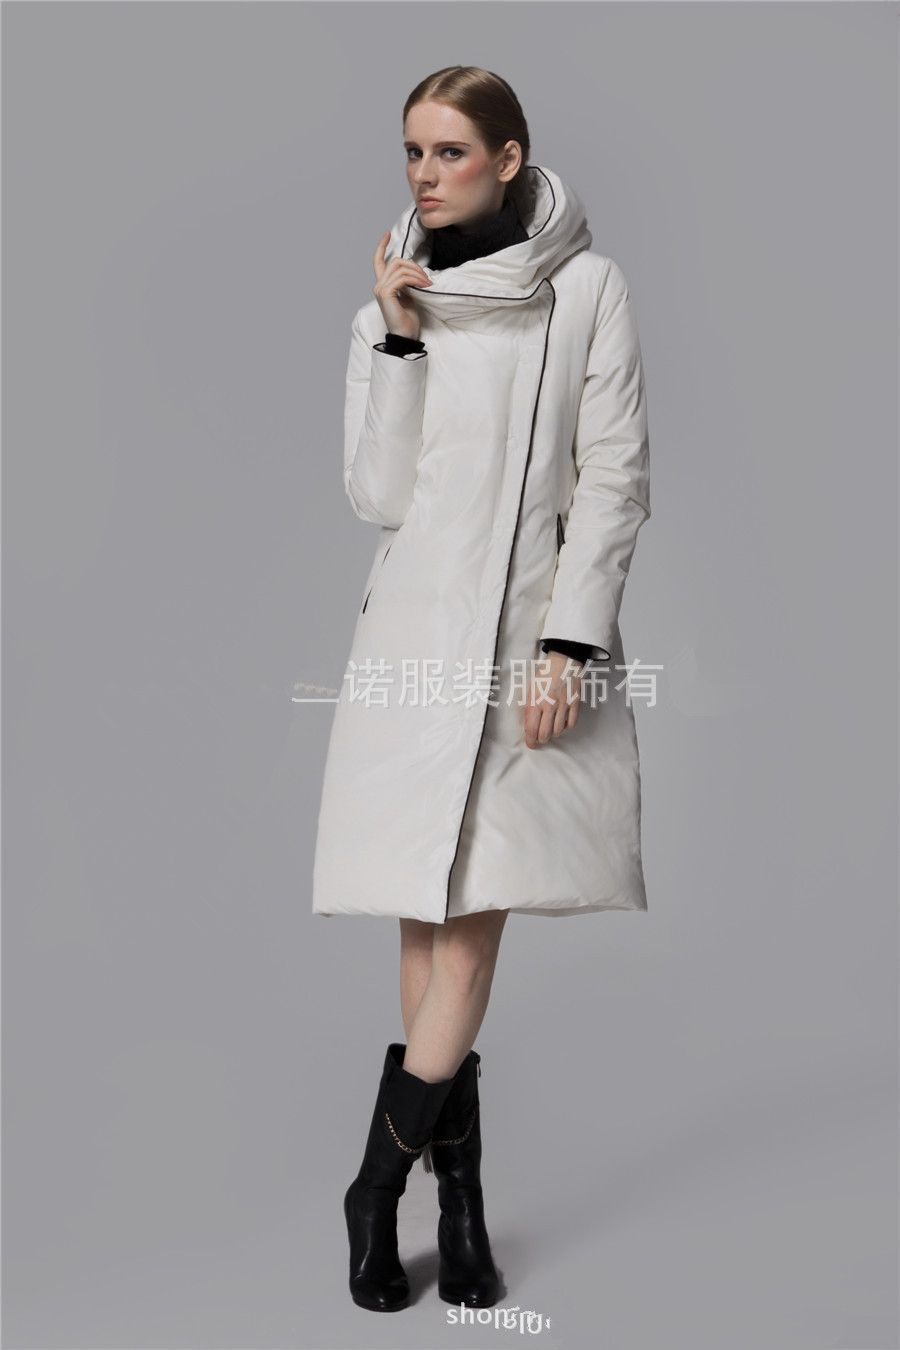 Free-shipping-white-coat-goose-down-font-b-jacket-b-font-women-s ...